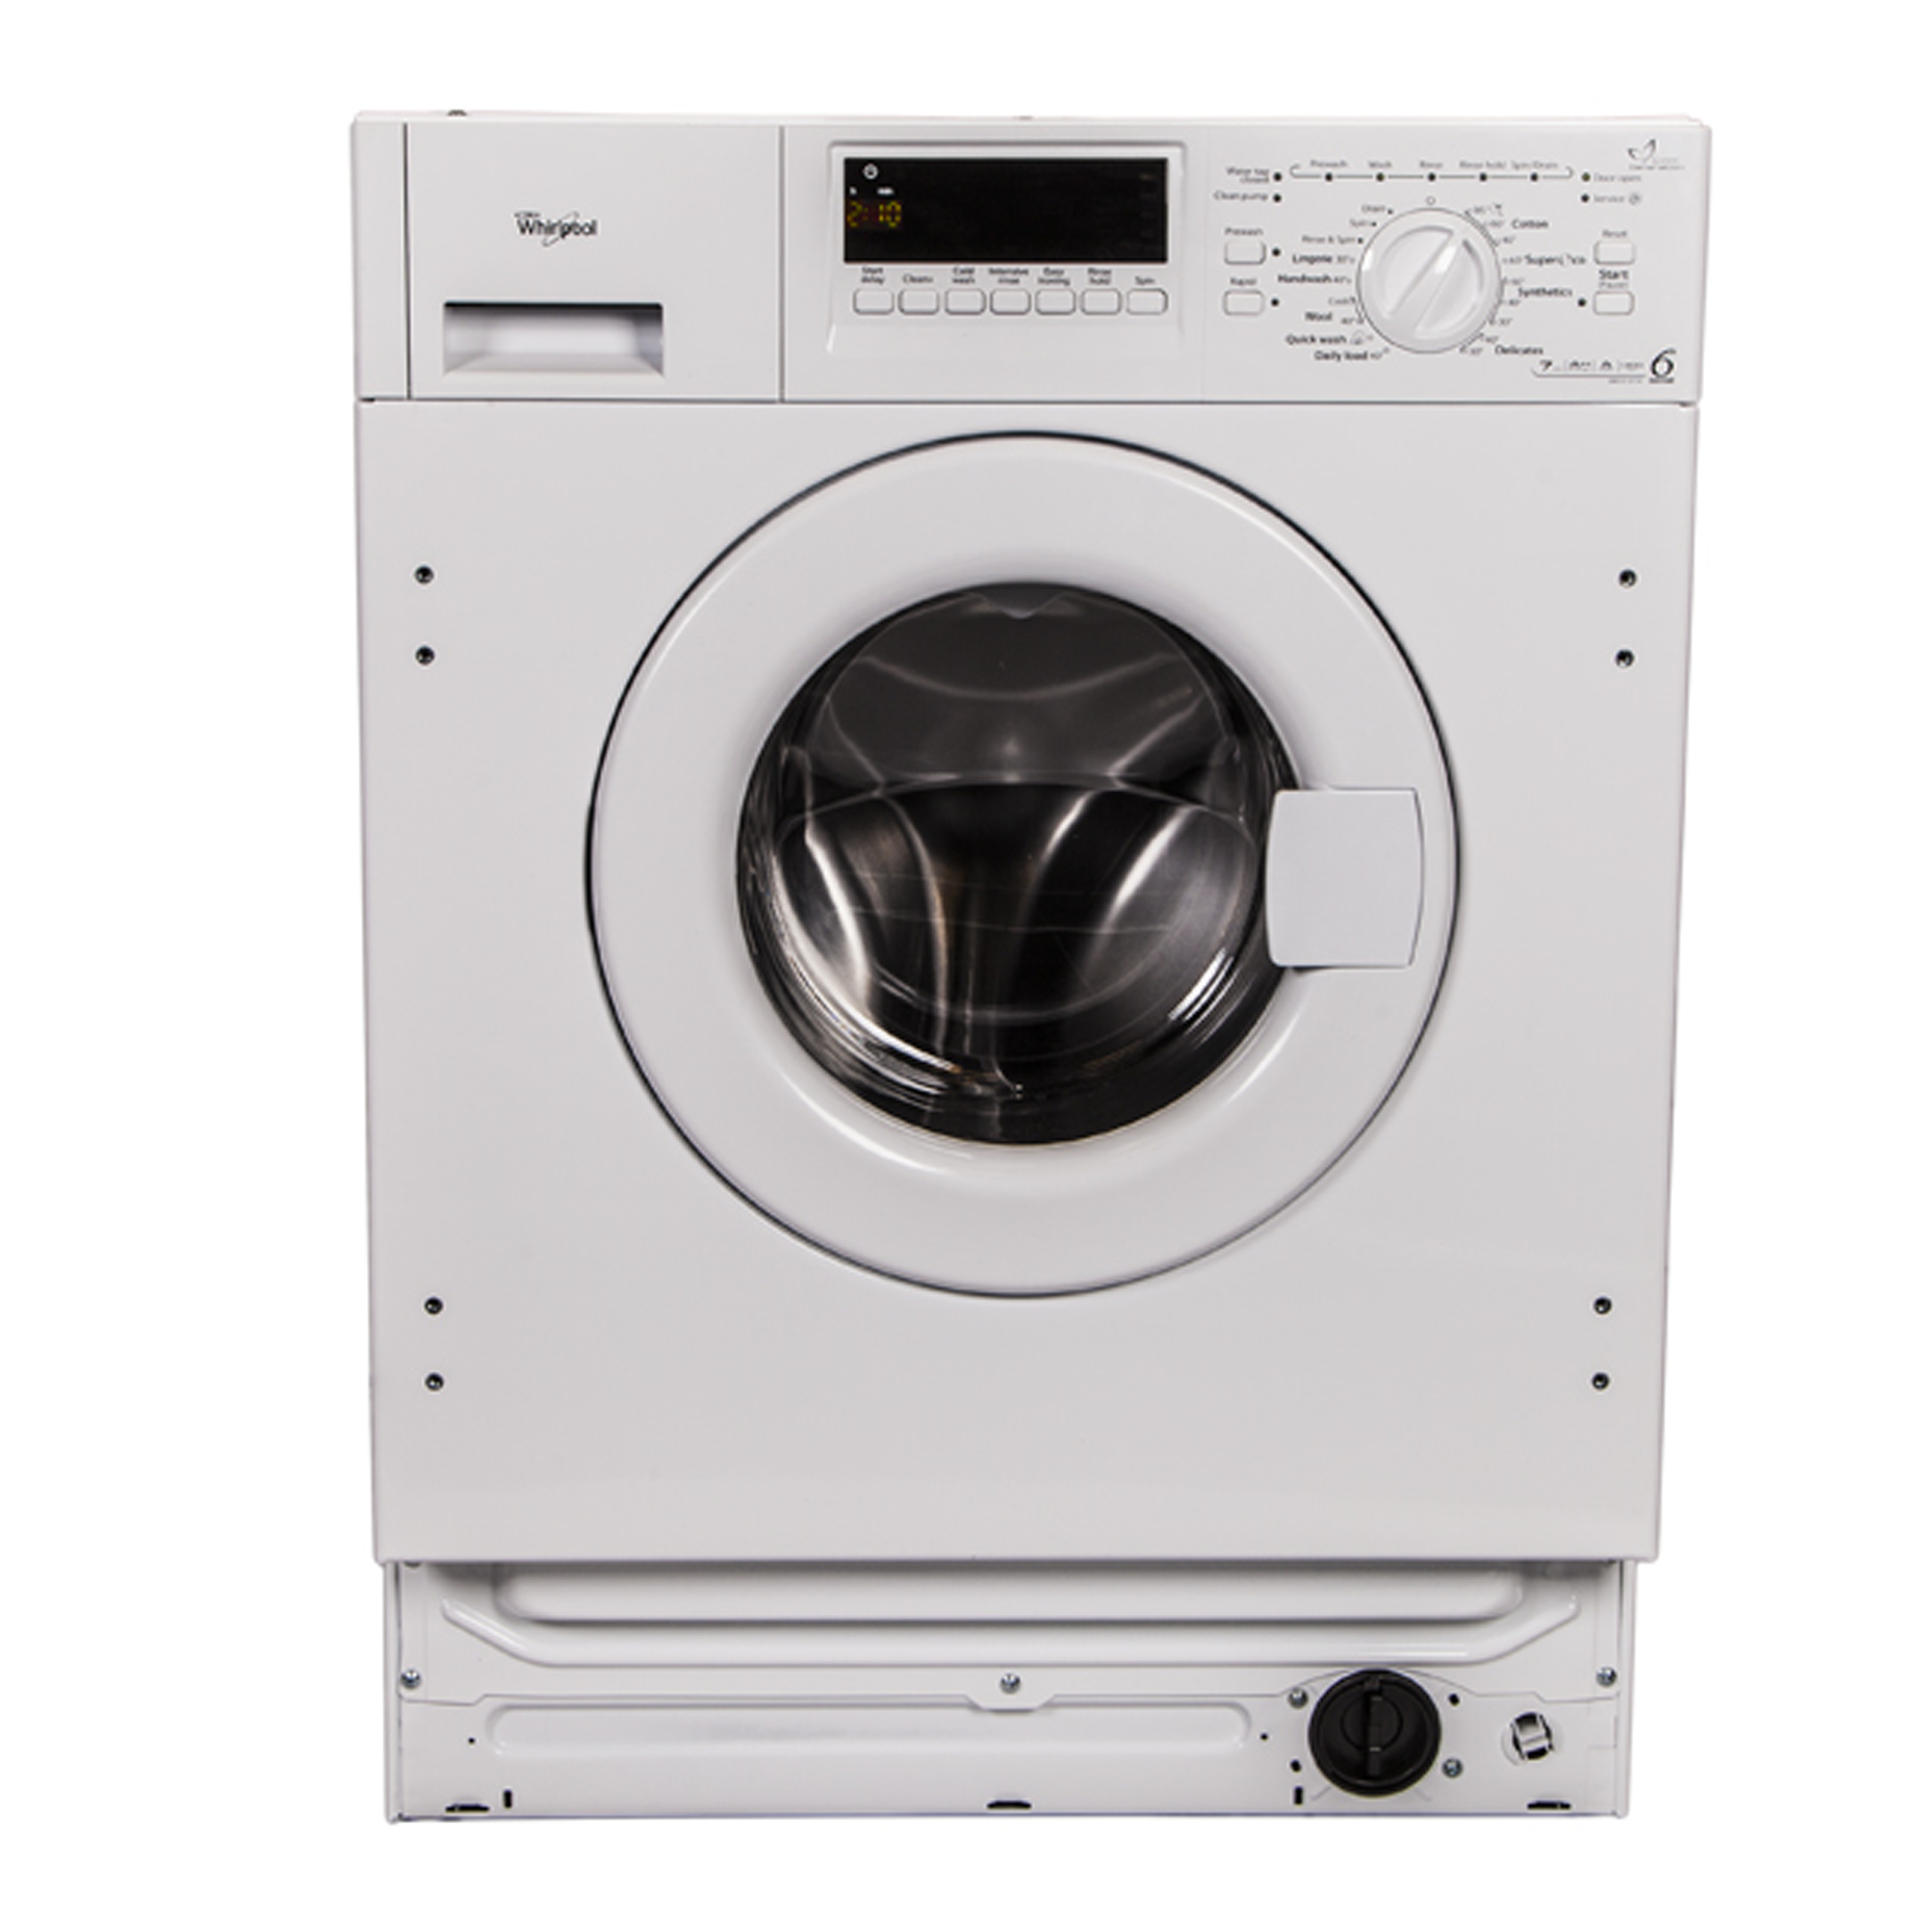 washing machine whirlpool awo c 0714 user manual devicemanuals rh devicemanuals eu Old Whirlpool Washing Machine Whirlpool Washing Machine Parts Diagram